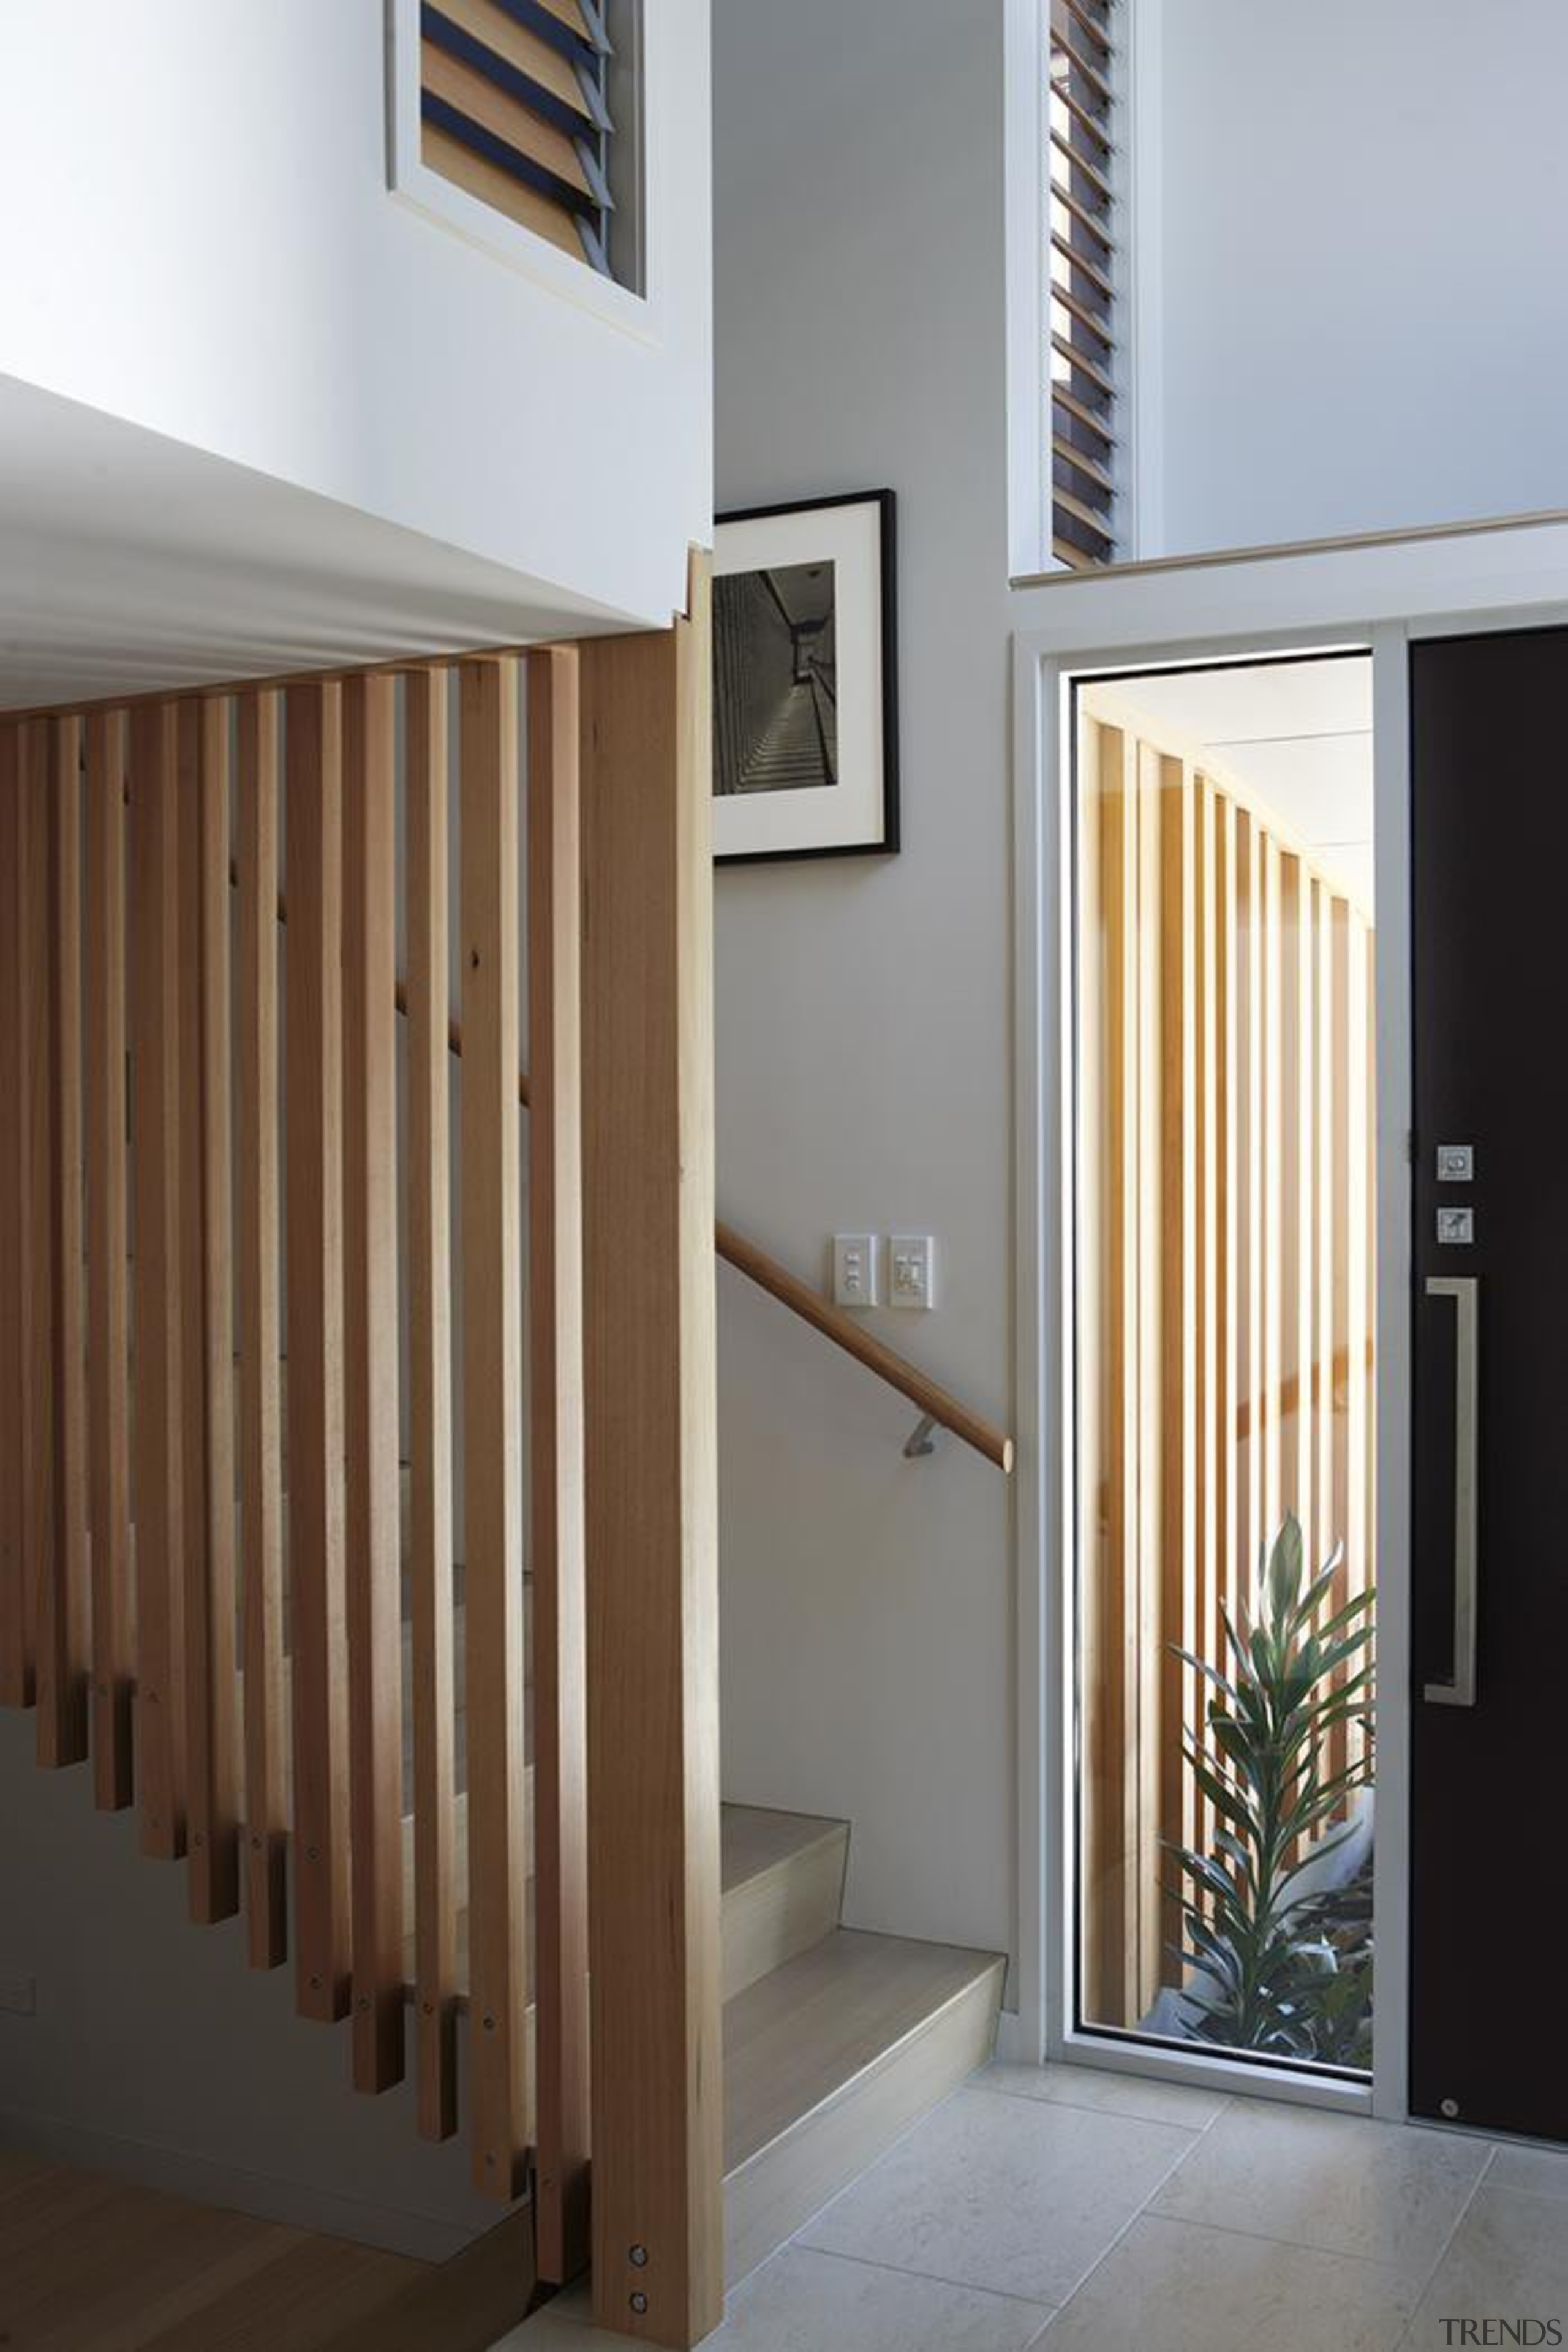 Parnell, Auckland - Nikau House - architecture   architecture, baluster, daylighting, door, floor, handrail, hardwood, home, house, interior design, stairs, wall, gray, brown